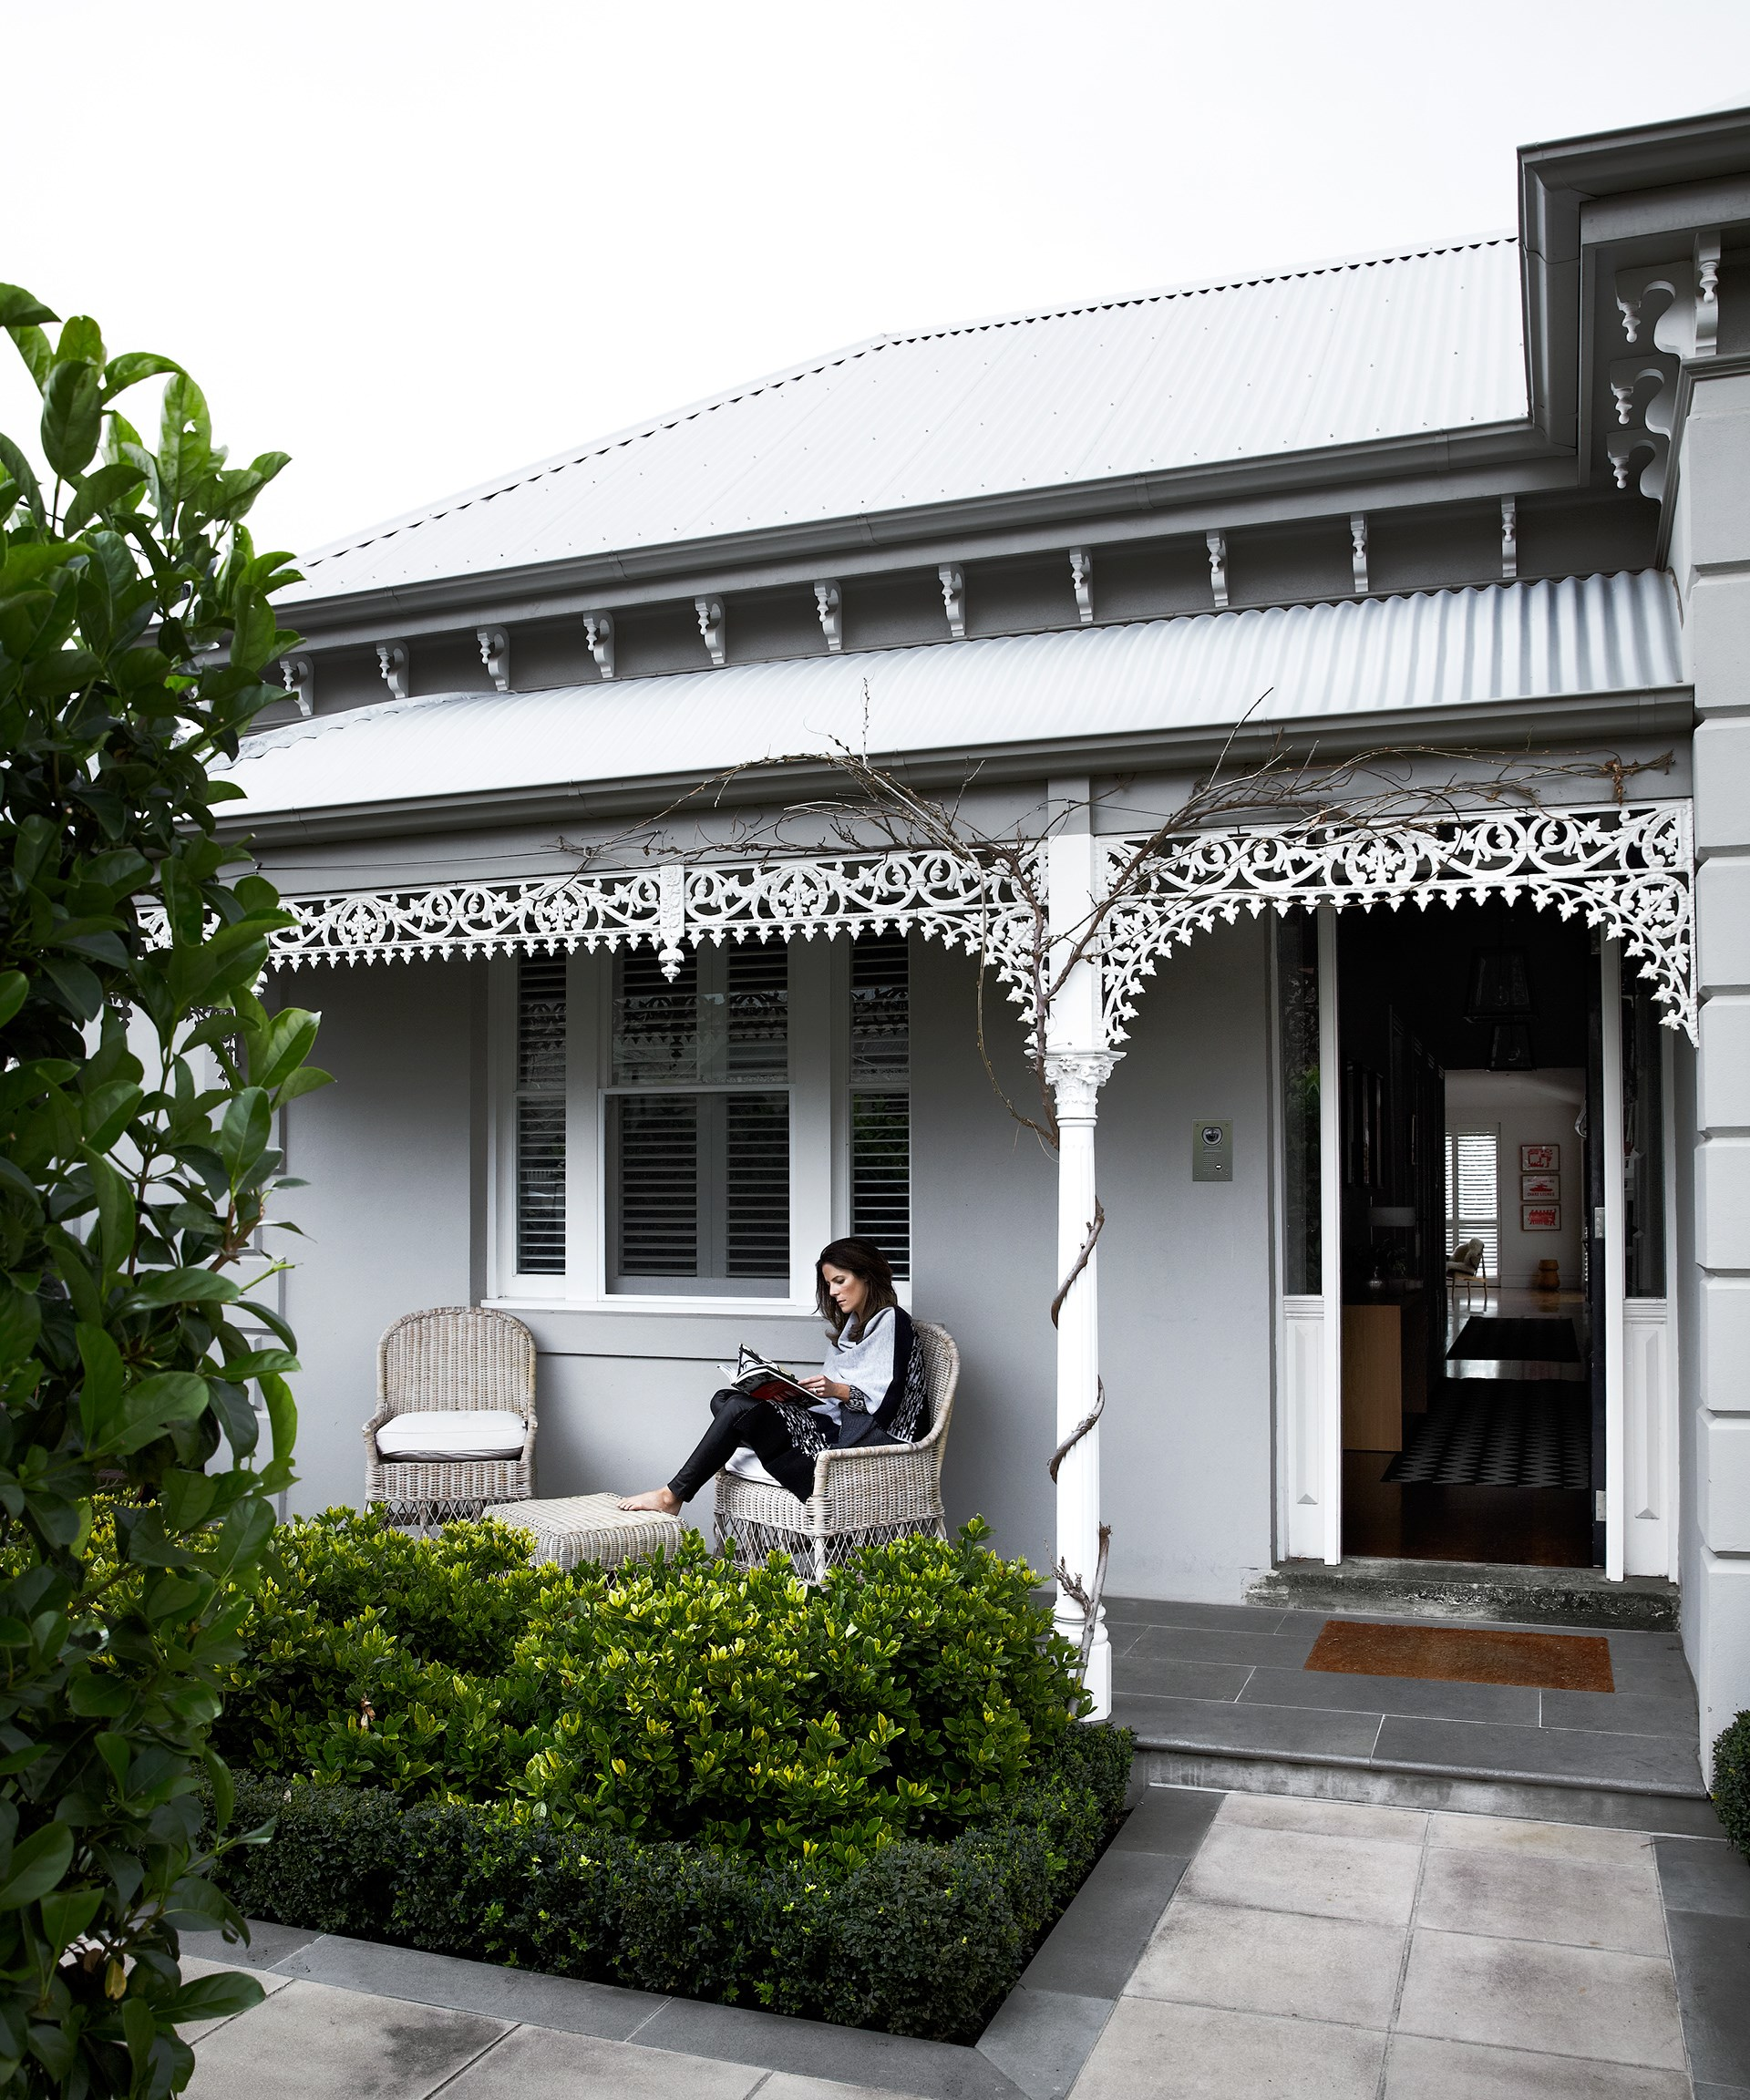 The monochrome theme of the interior extends outside to the front verandah of this double-fronted brick home in Melbourne. Take a look inside this [Victorian-era home](http://www.homestolove.com.au/gallery-georginas-monochrome-home-renovation-1871). Photo: Sharyn Cairns / *real living*